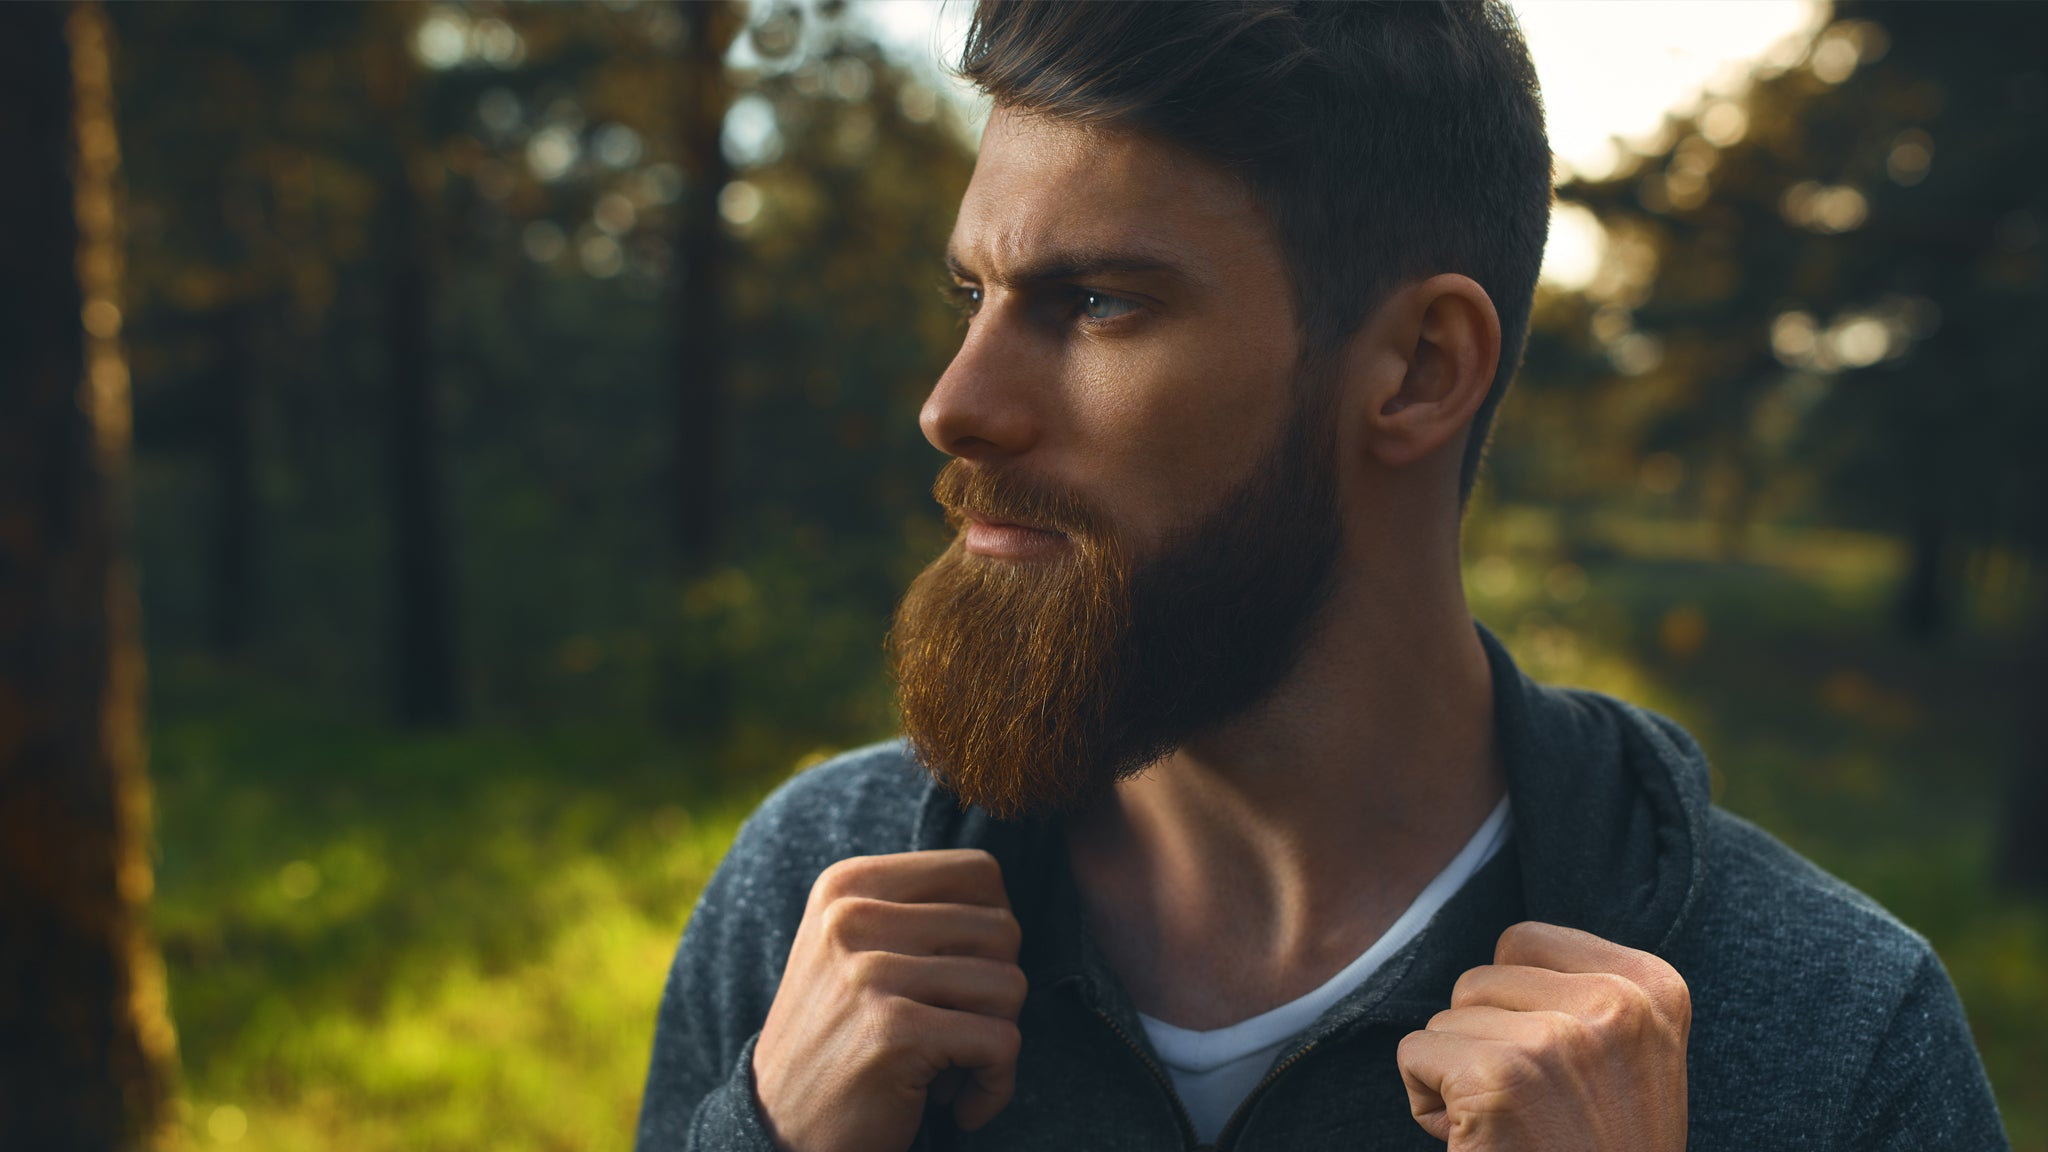 ultimate-guide-to-growing-your-beard